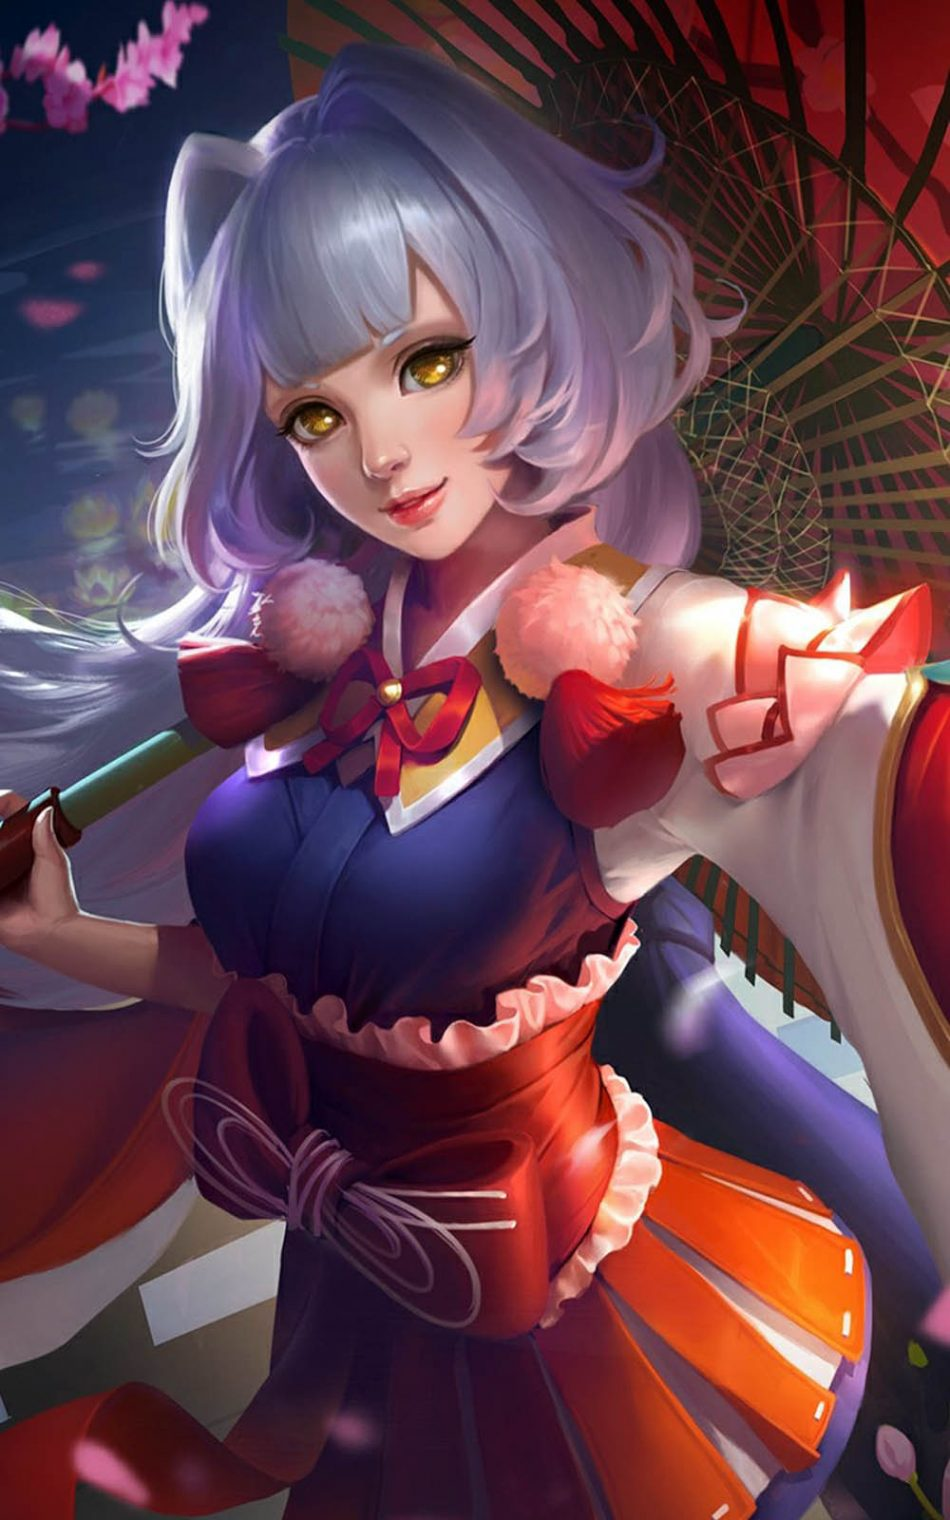 Hd Wallpaper Car And Bike Download Cherry Witch Kagura Mobile Legends Download Free 100